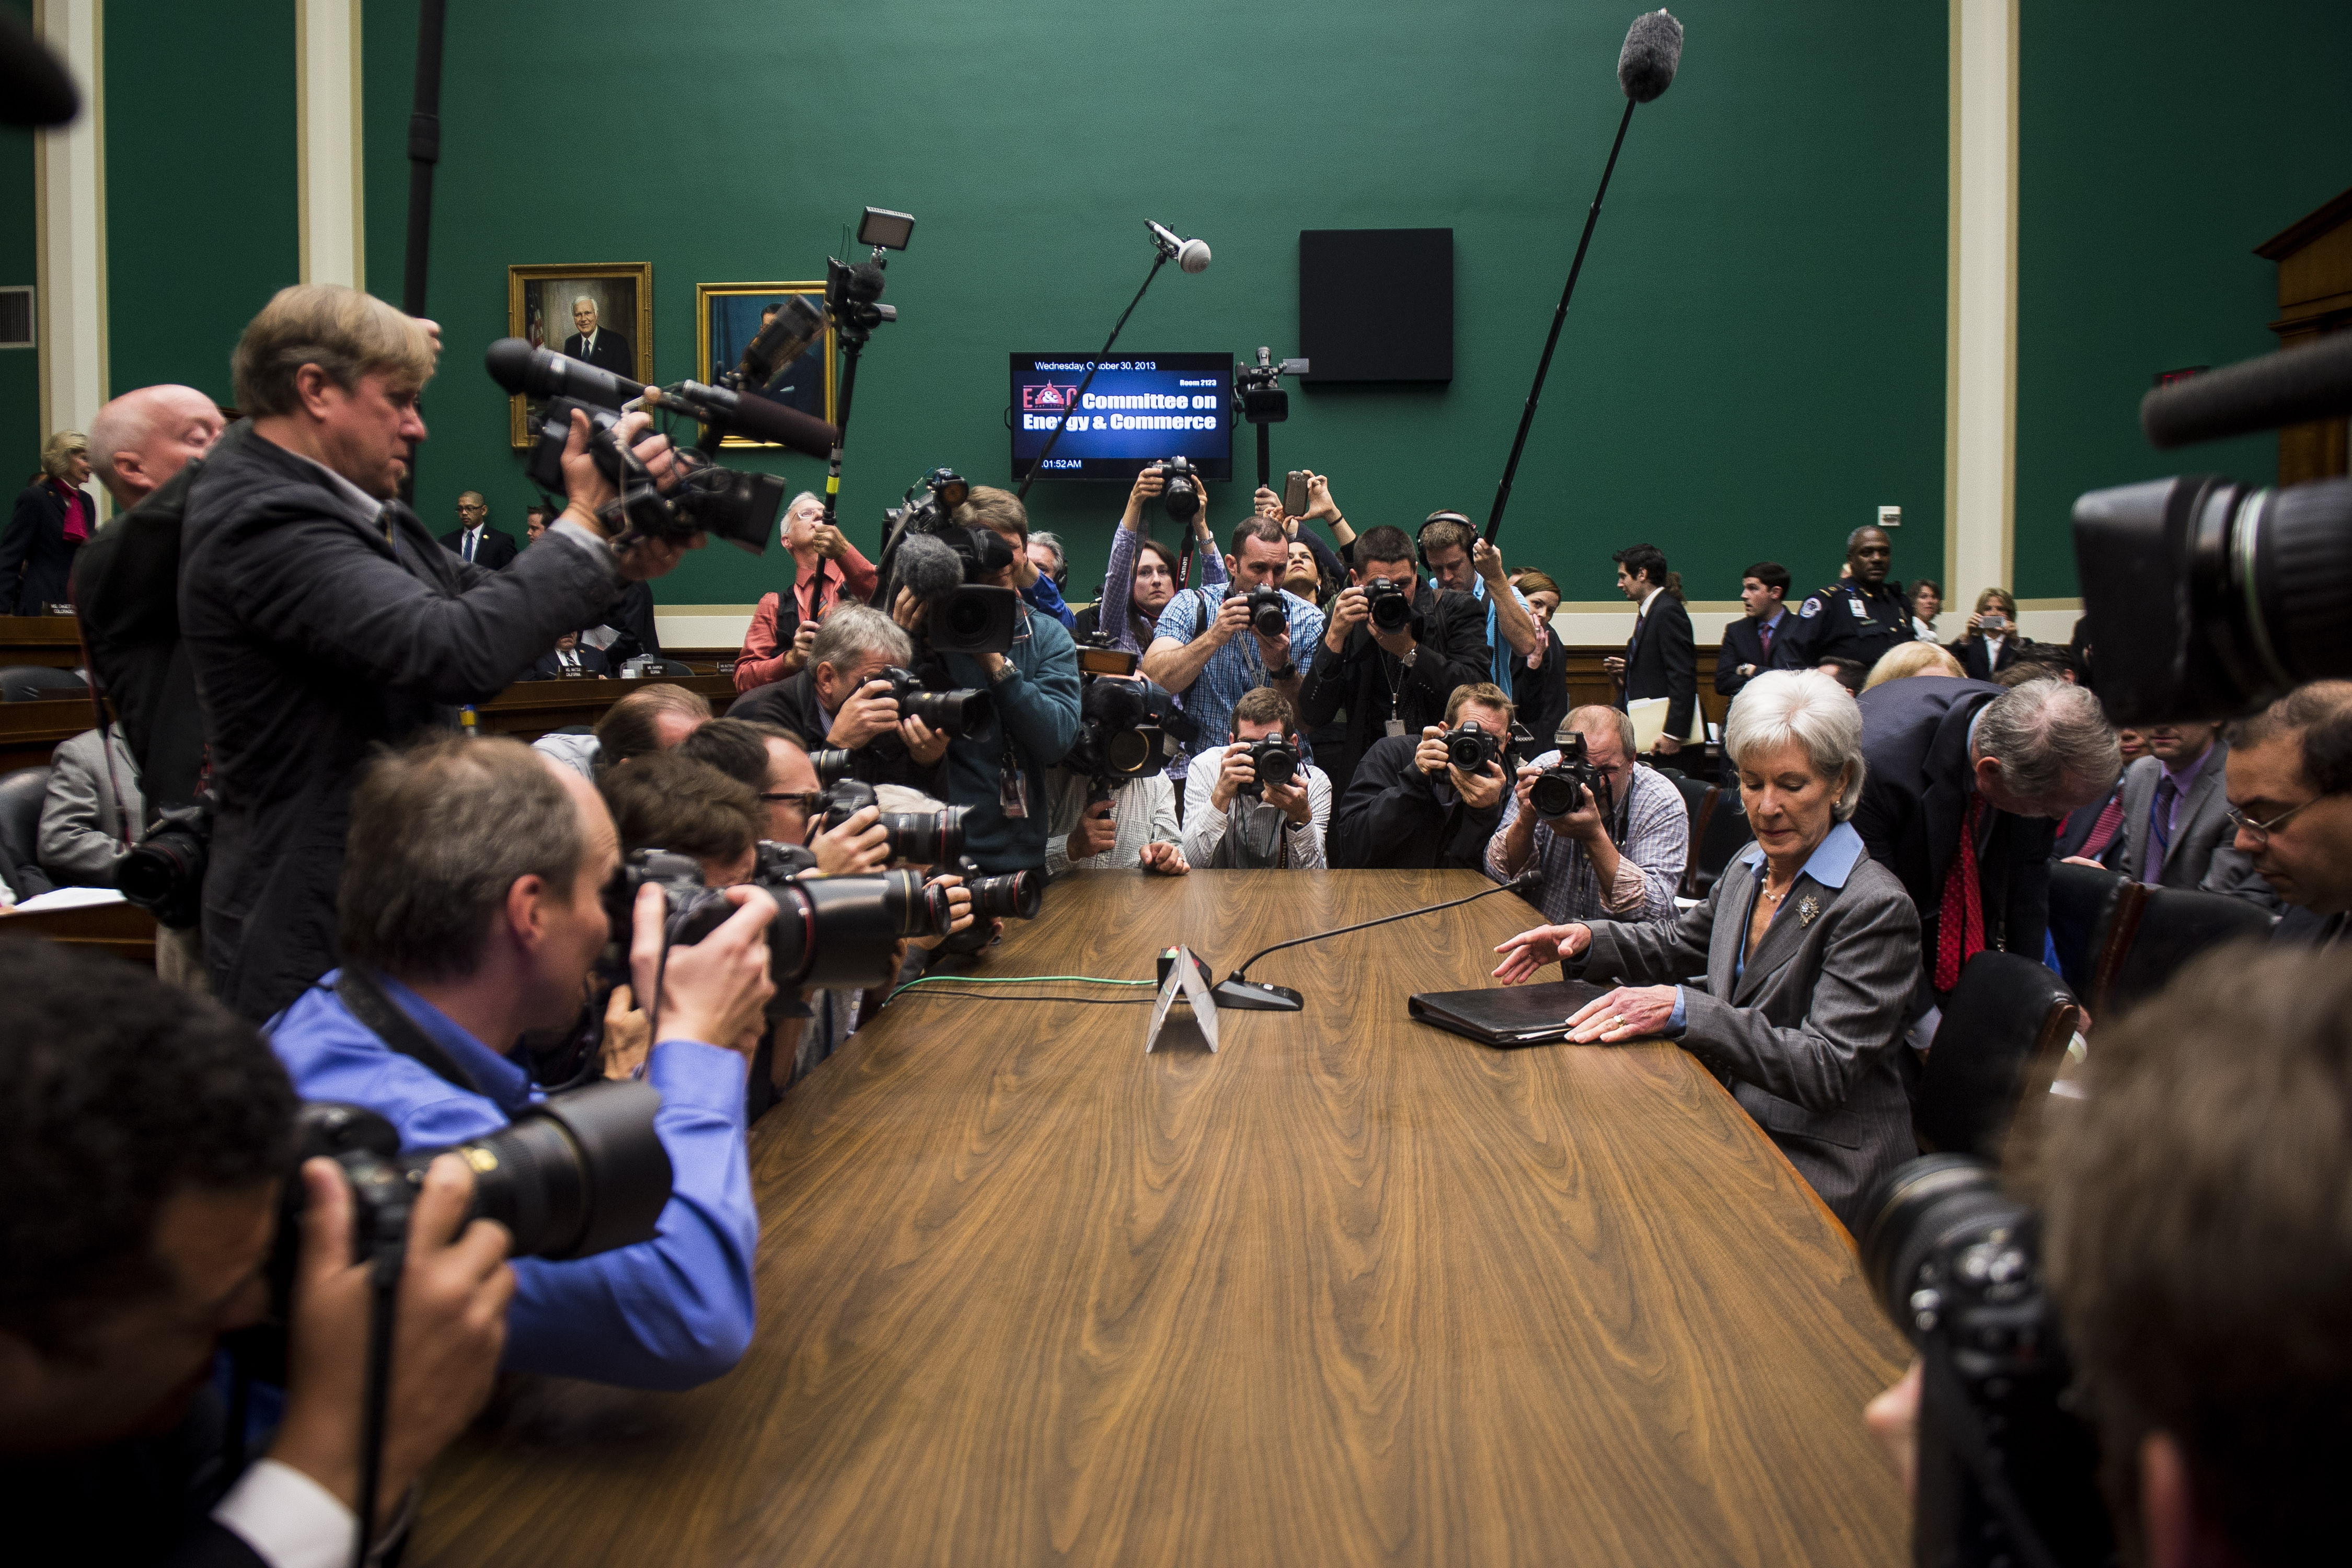 Health and Human Services Secretary Kathleen Sebelius apologized Wednesday for the frustration that millions of Americans have experienced while trying to shop for insurance on the HealthCare.gov website.